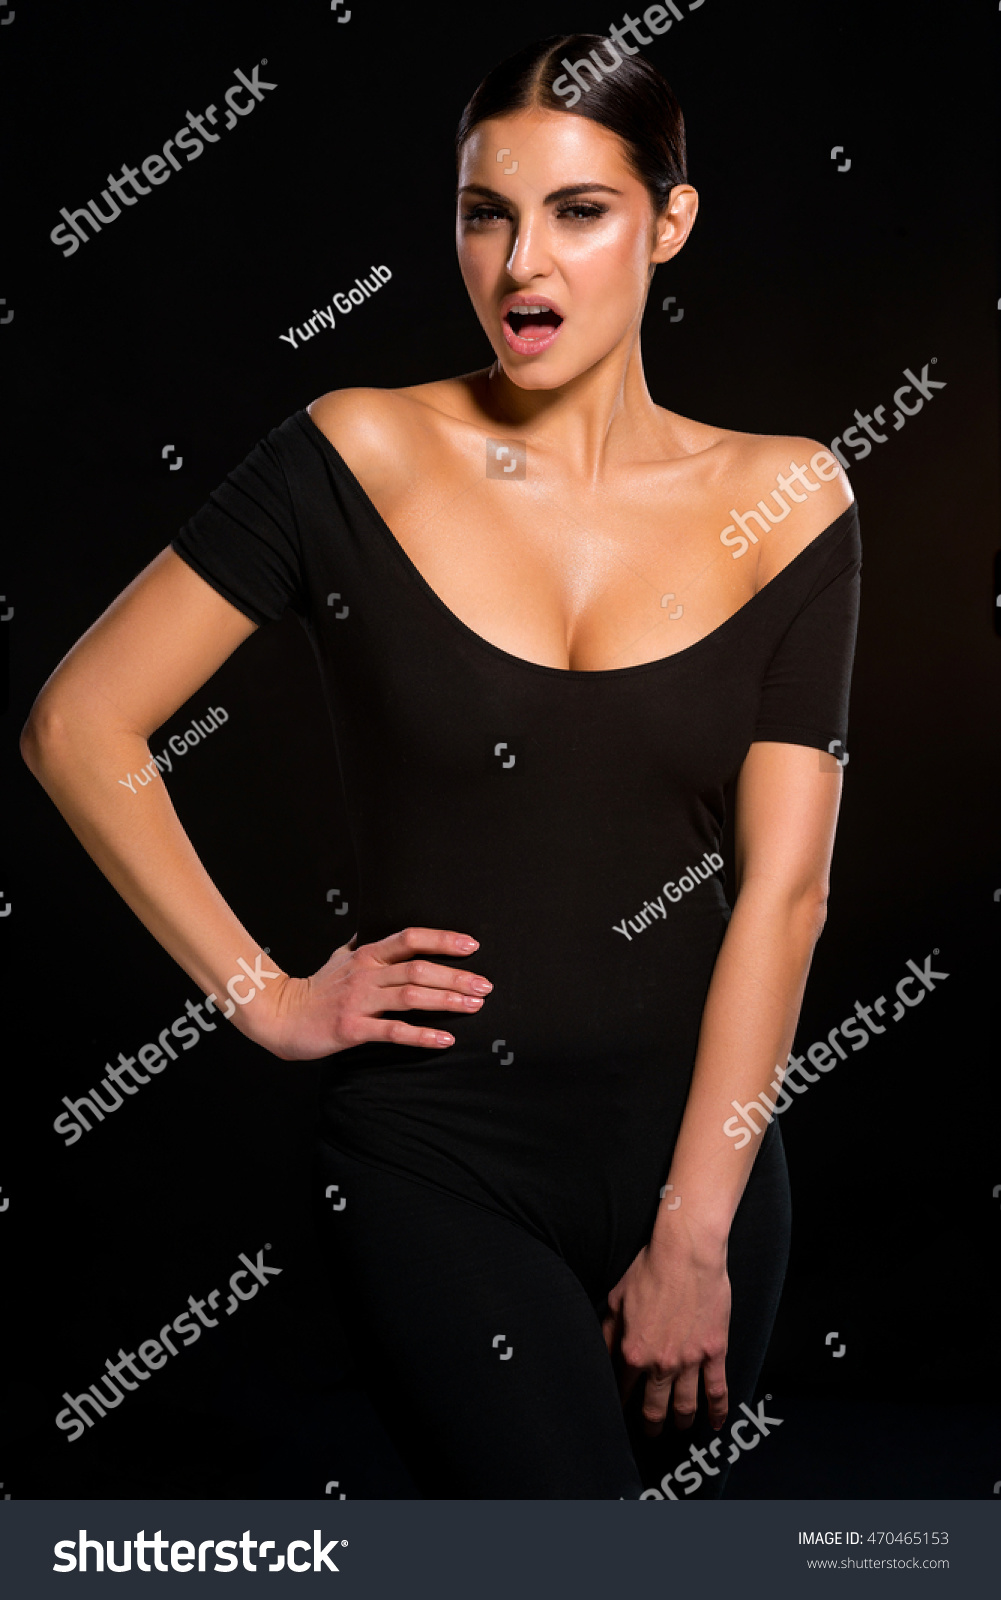 Hot Passionate Lady In Black Dress For Perfect Body With No Defects Sexy Woman With